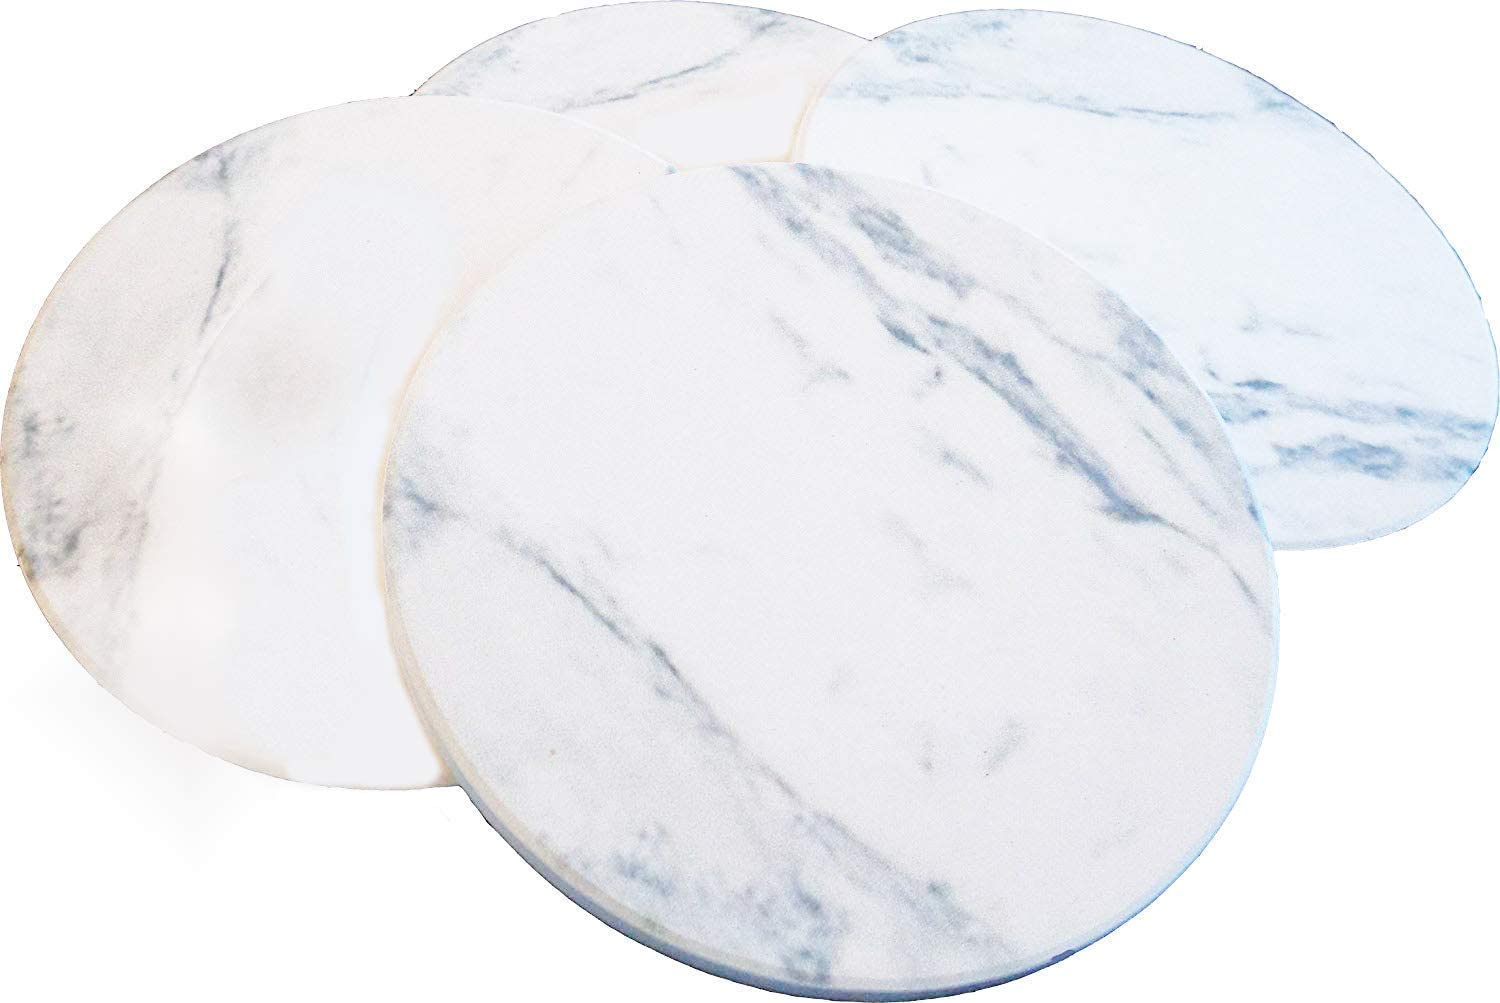 COASTERS FOR DRINKS ABSORBENT - Faux Marble Ceramic Coasters, Set of 4, Coasters for Drinks, Stone Coasters, Table Coaster Set with Cork Backing by Ovation Home (Marble Design)